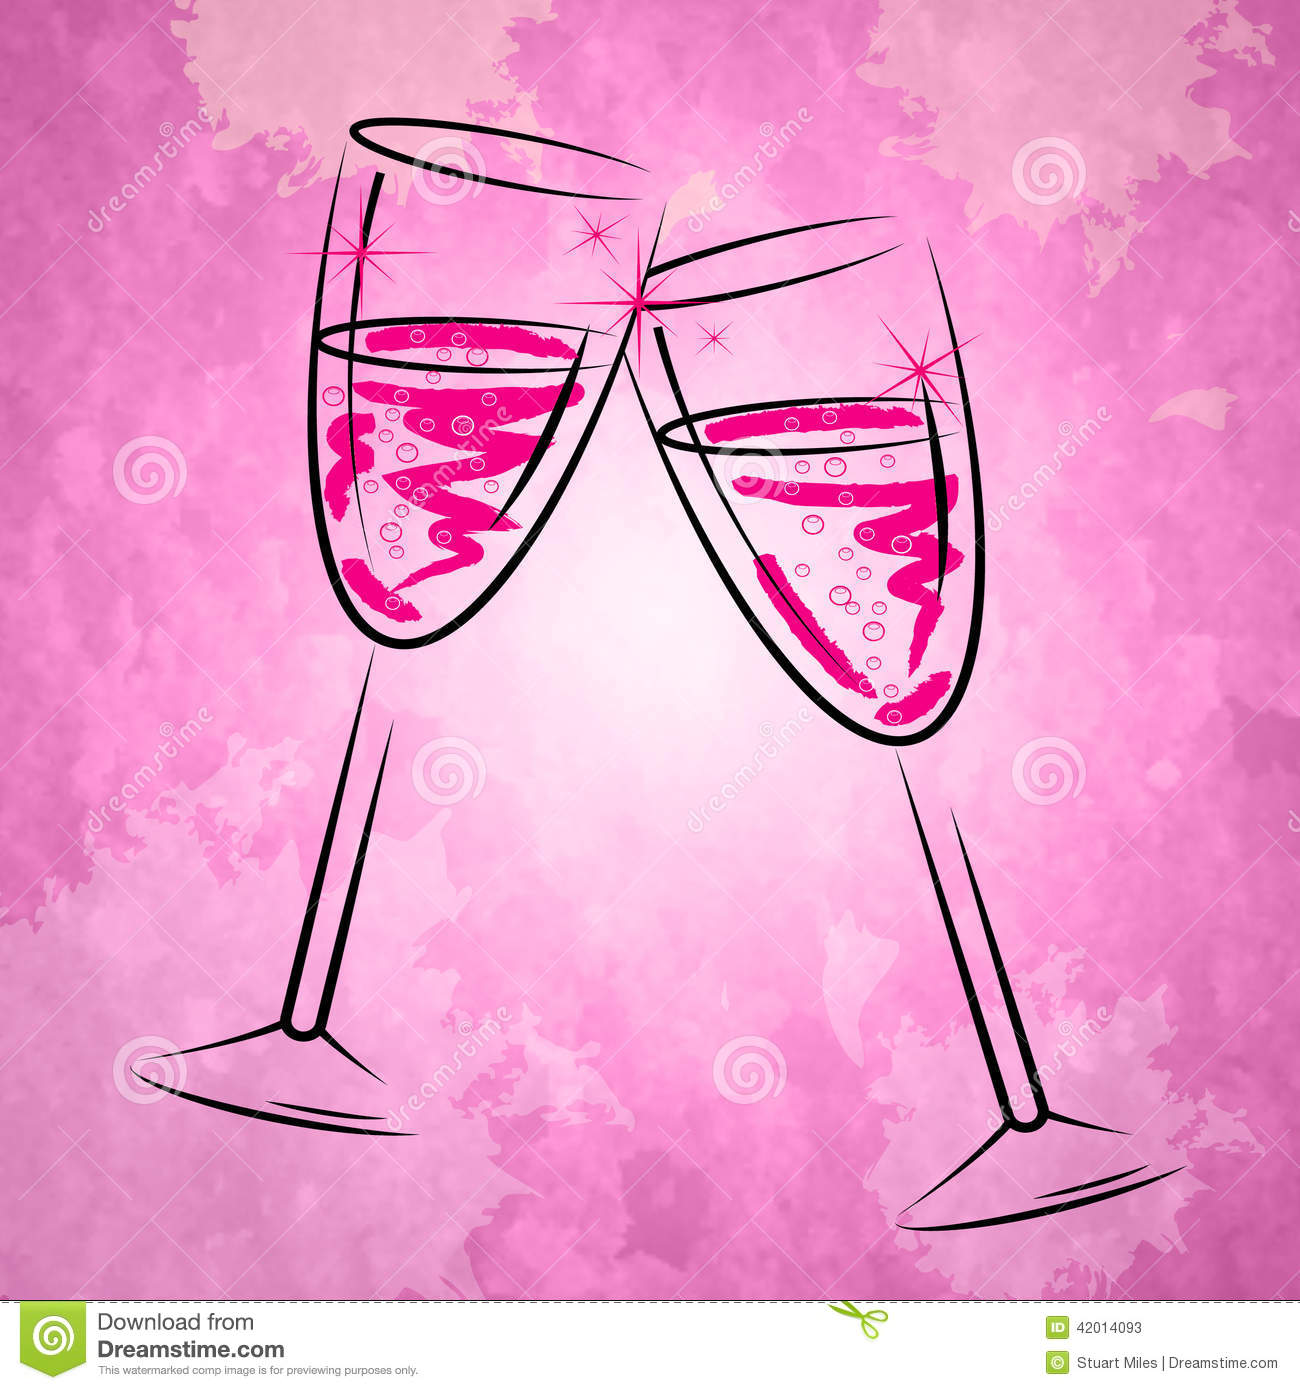 Champagne Glasses Shows Sparkling Alcohol und Weinglas